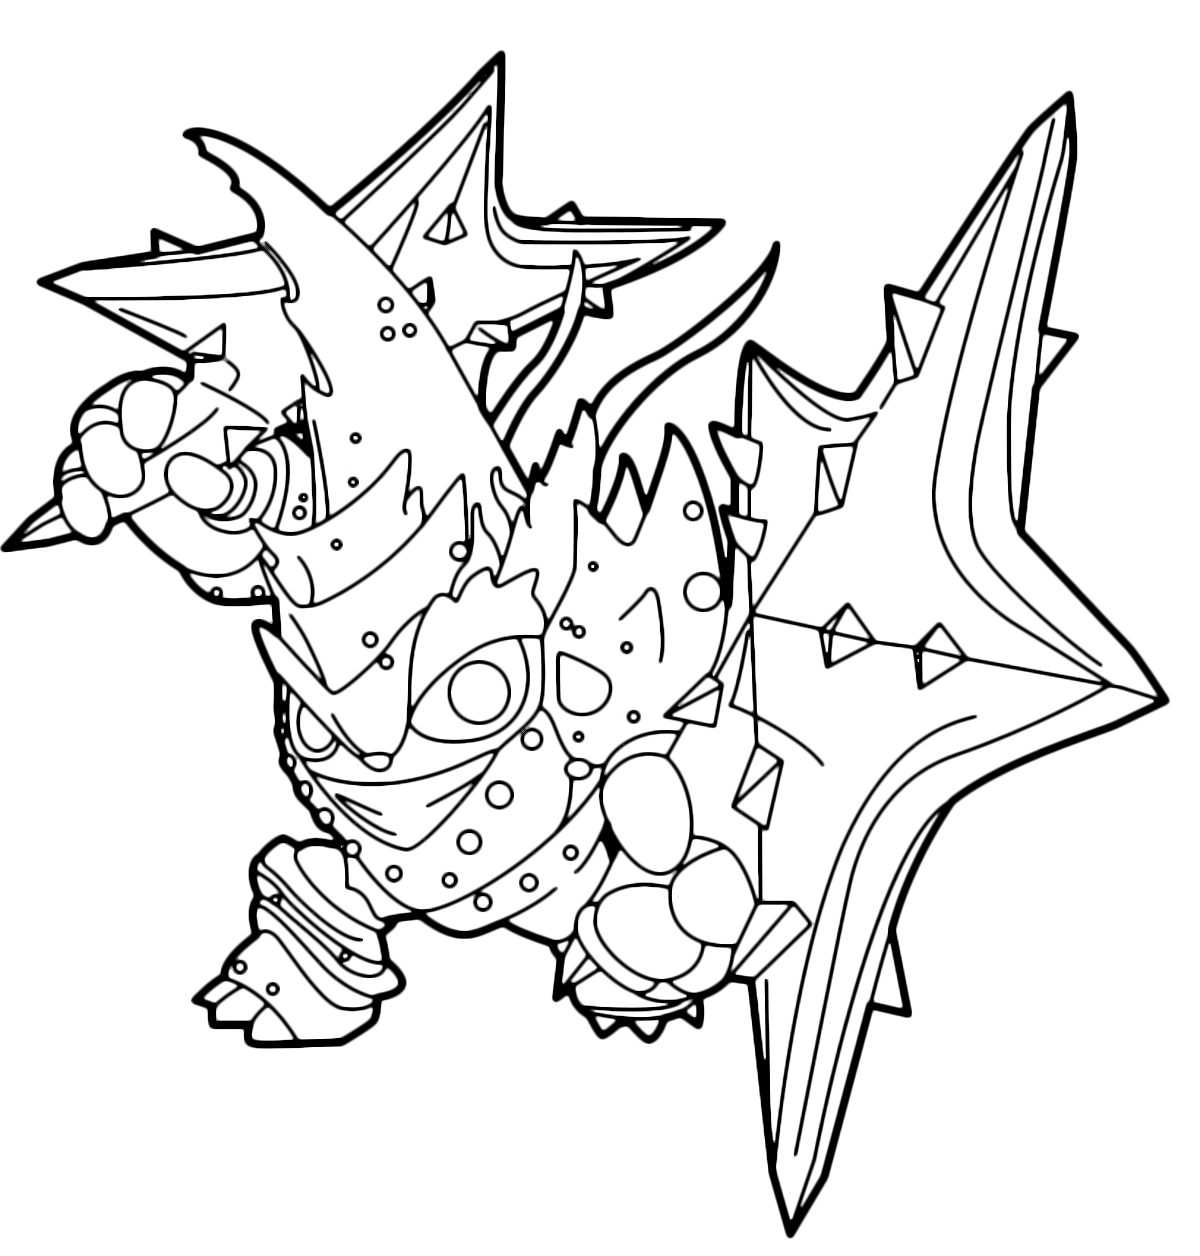 kirby coloring pages - trap team lob star stella lucente stella vinvente